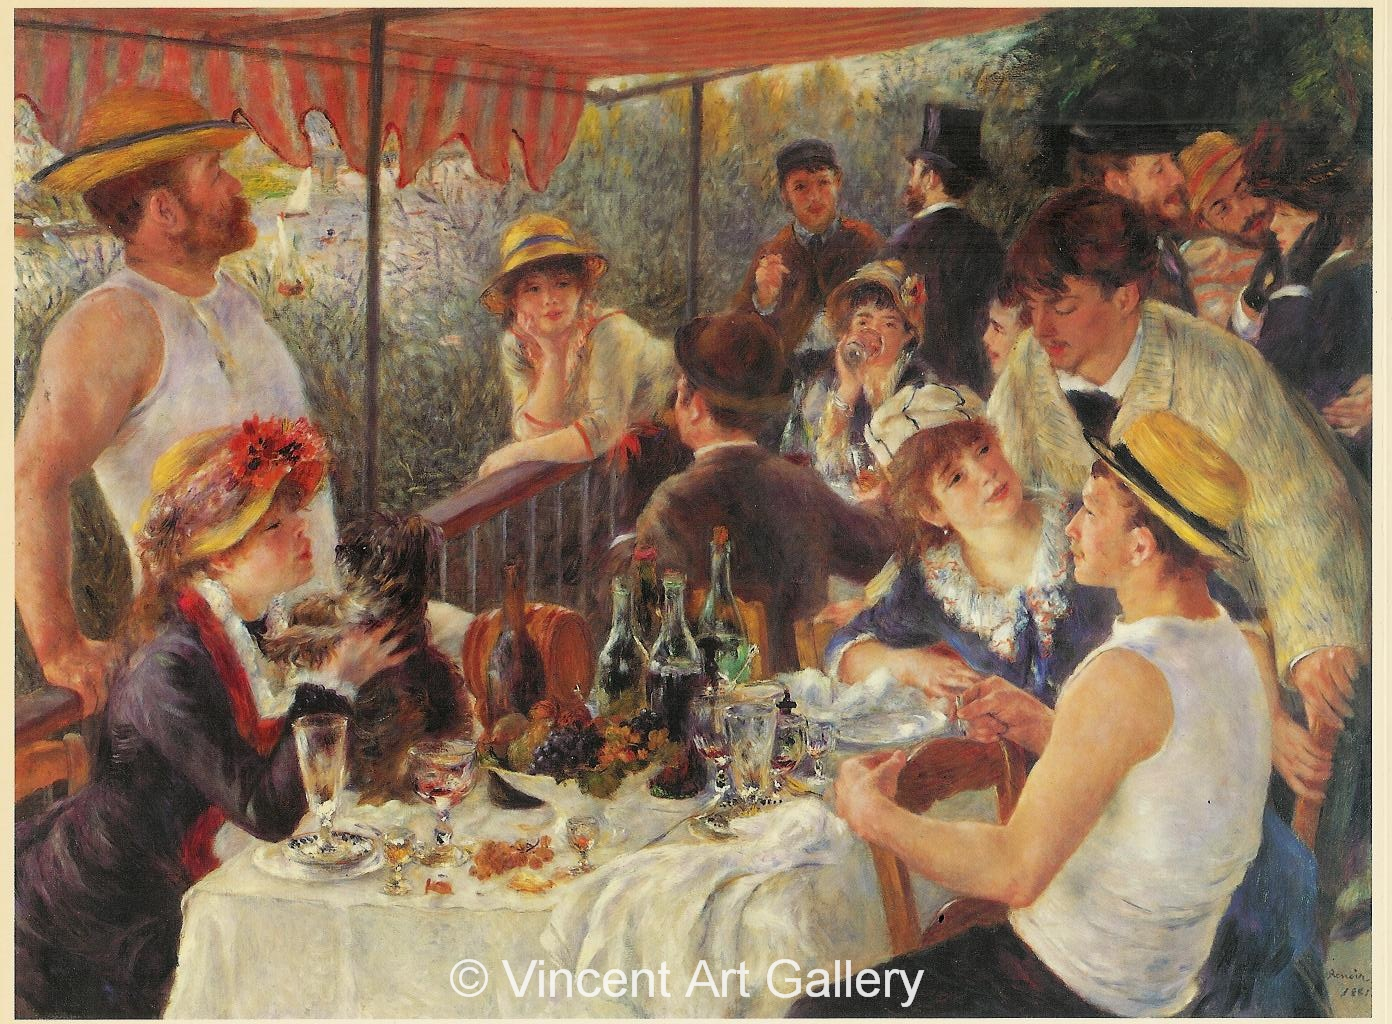 A199, RENOIR, The Canoeists' Luncheon